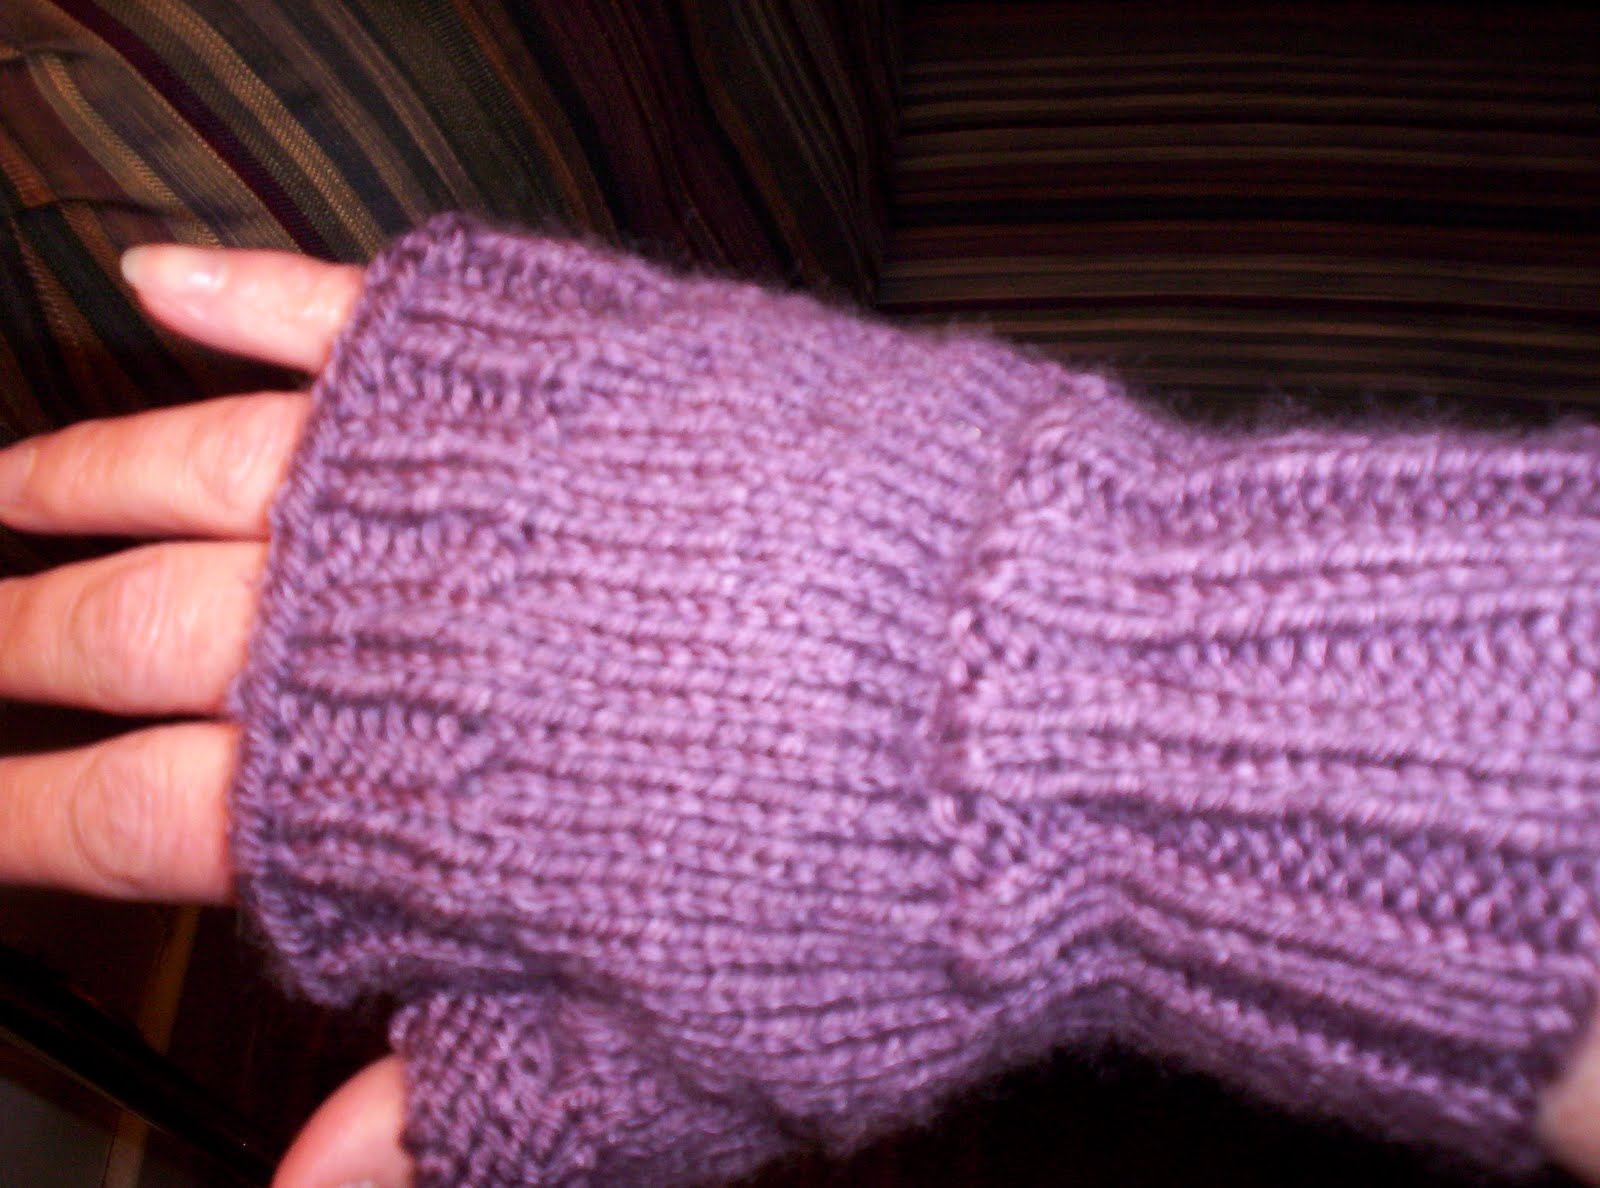 Knit Fingerless Gloves Pattern Free : Busyknitting: Any Idiot Can Knit These Fingerless Gloves-FREE PATTERN